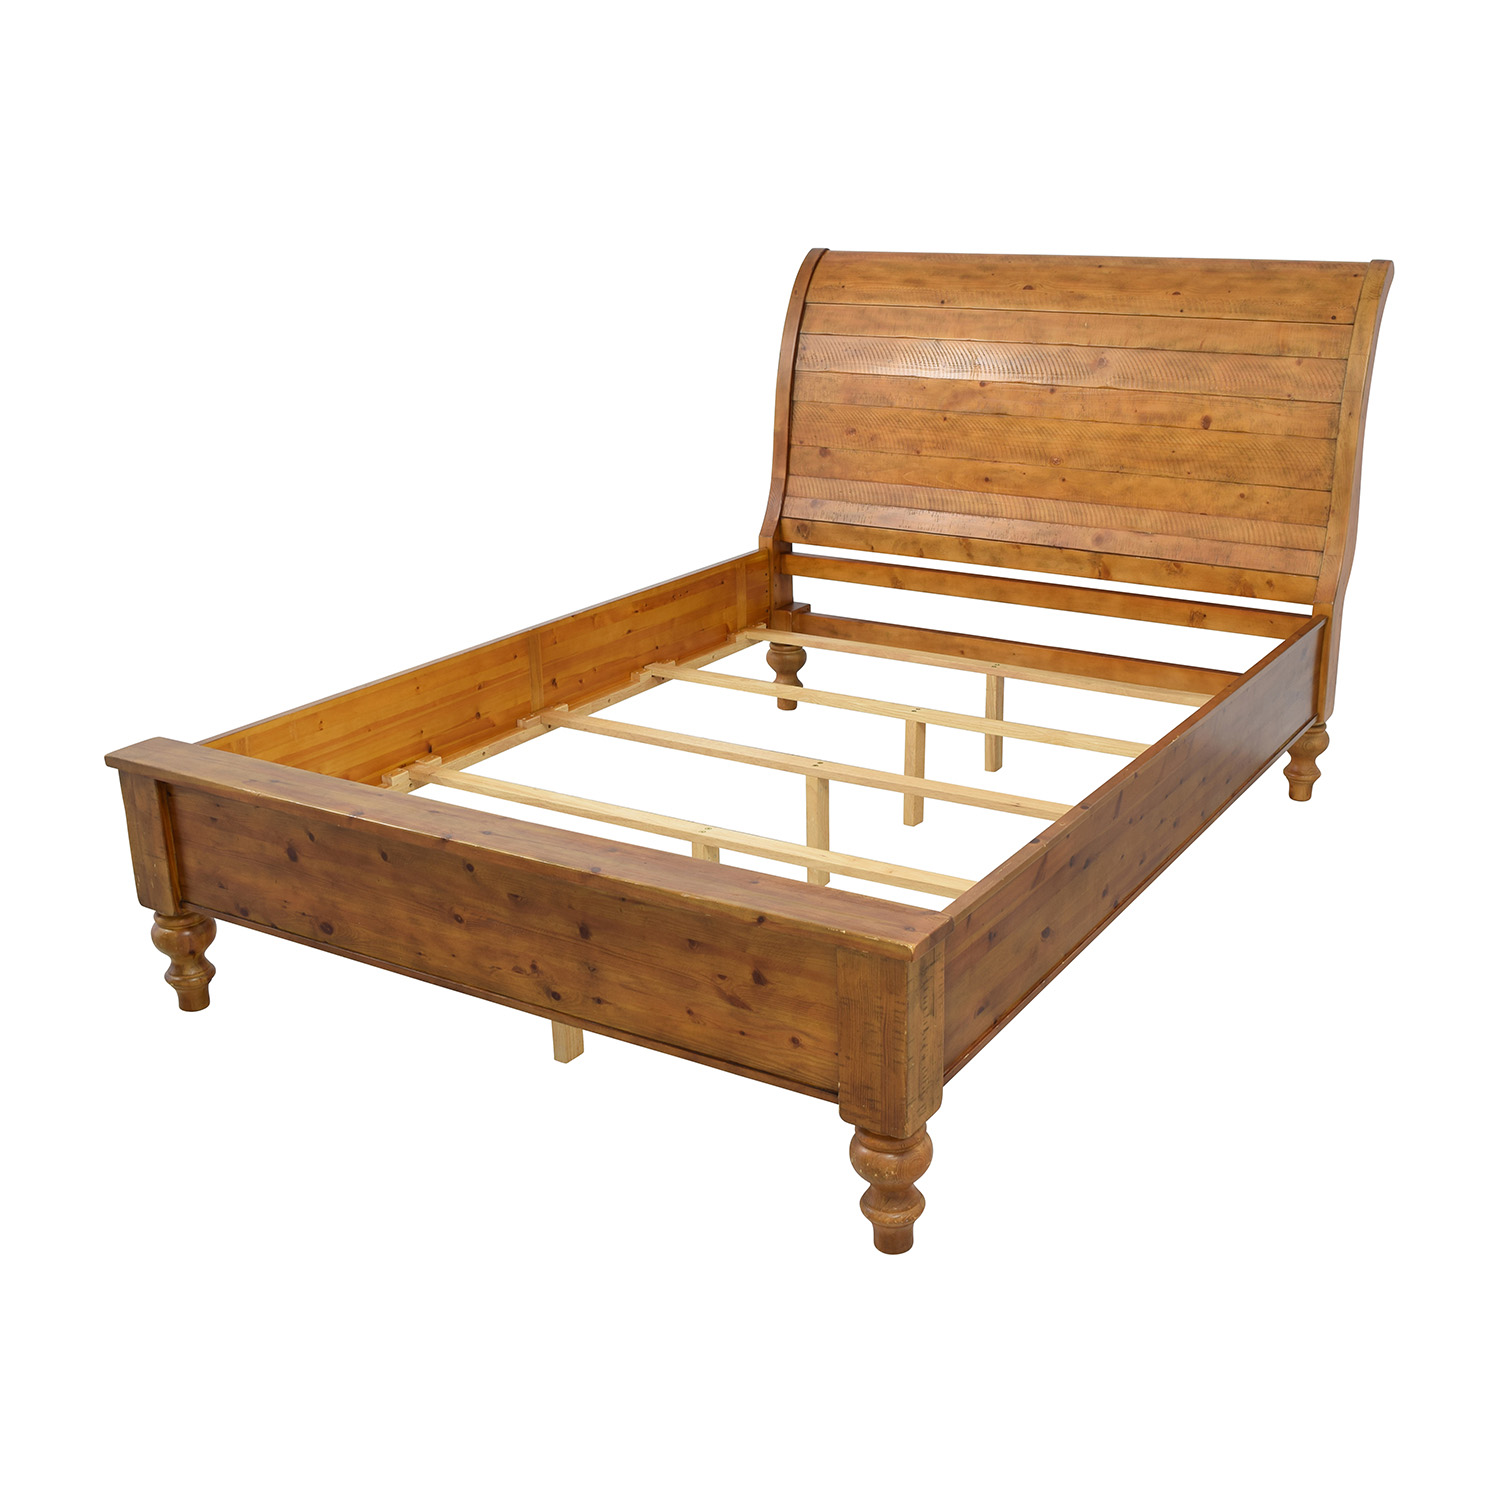 These Bed Frames Include A Support Frame For All Sides Of The Mattress Plus Legs Slats Decorative Sleigh Headboard And Low Profile